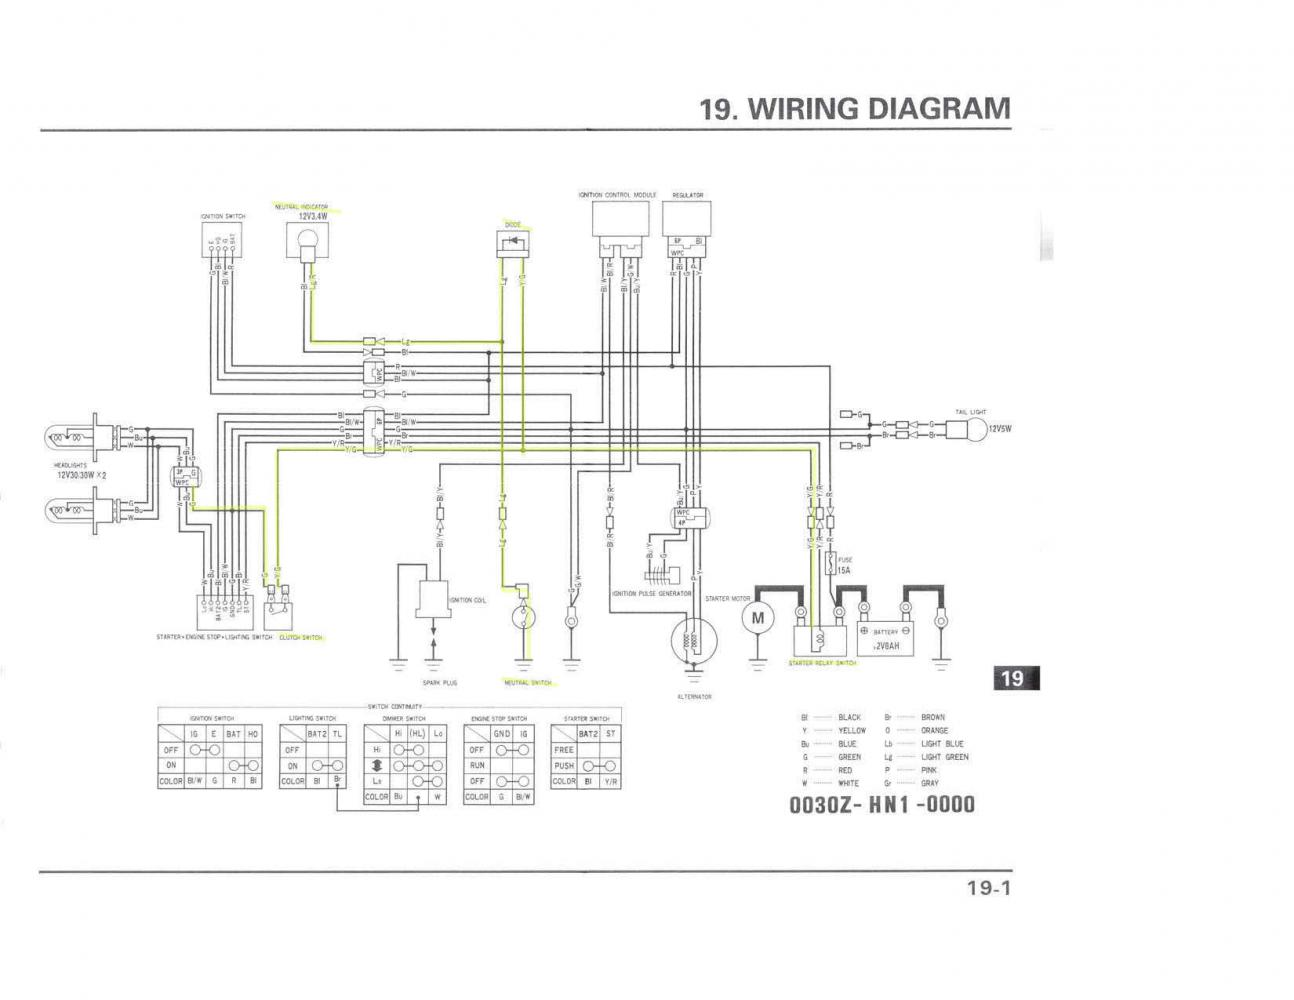 vending machine wiring diagram